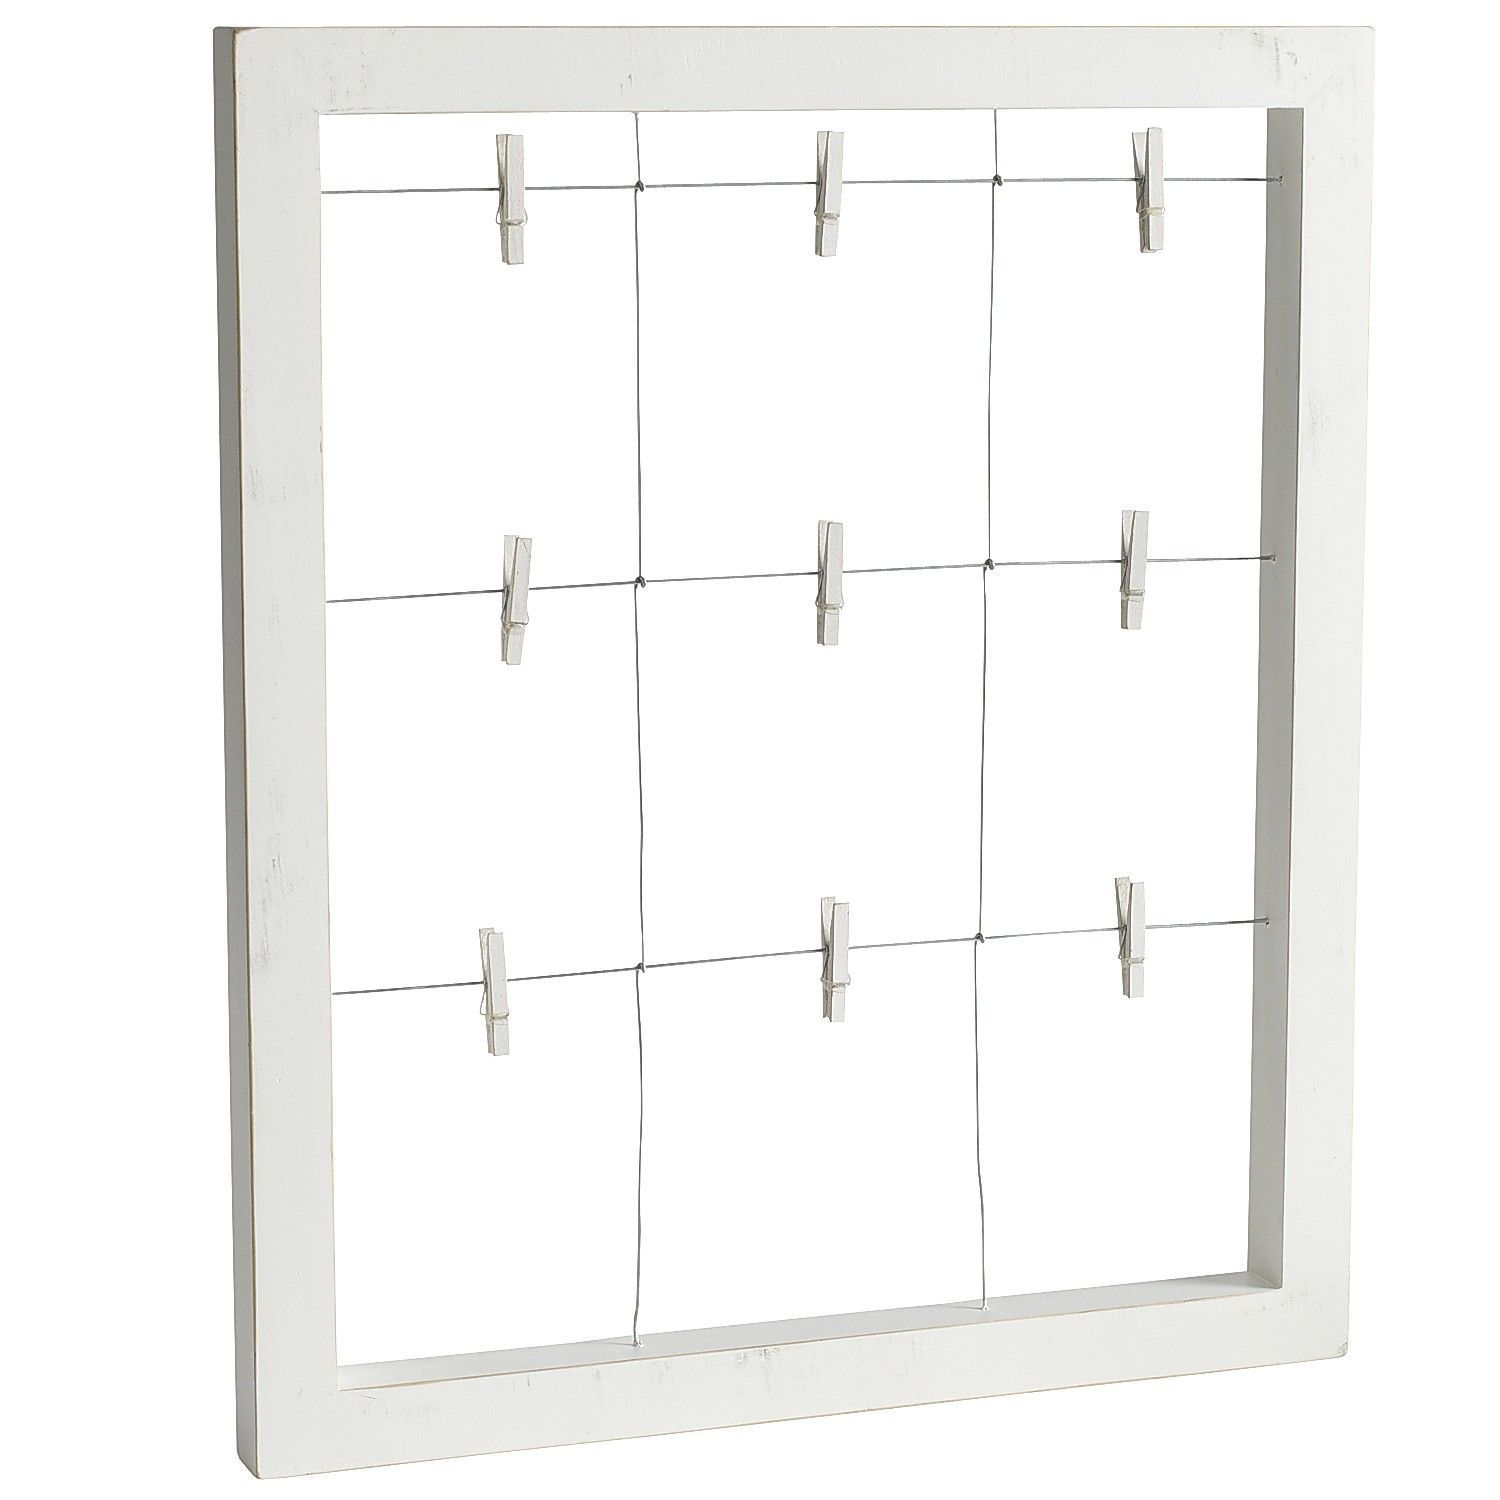 Clip It White Window Wall Frame: A wire grid with nine metal clips ...